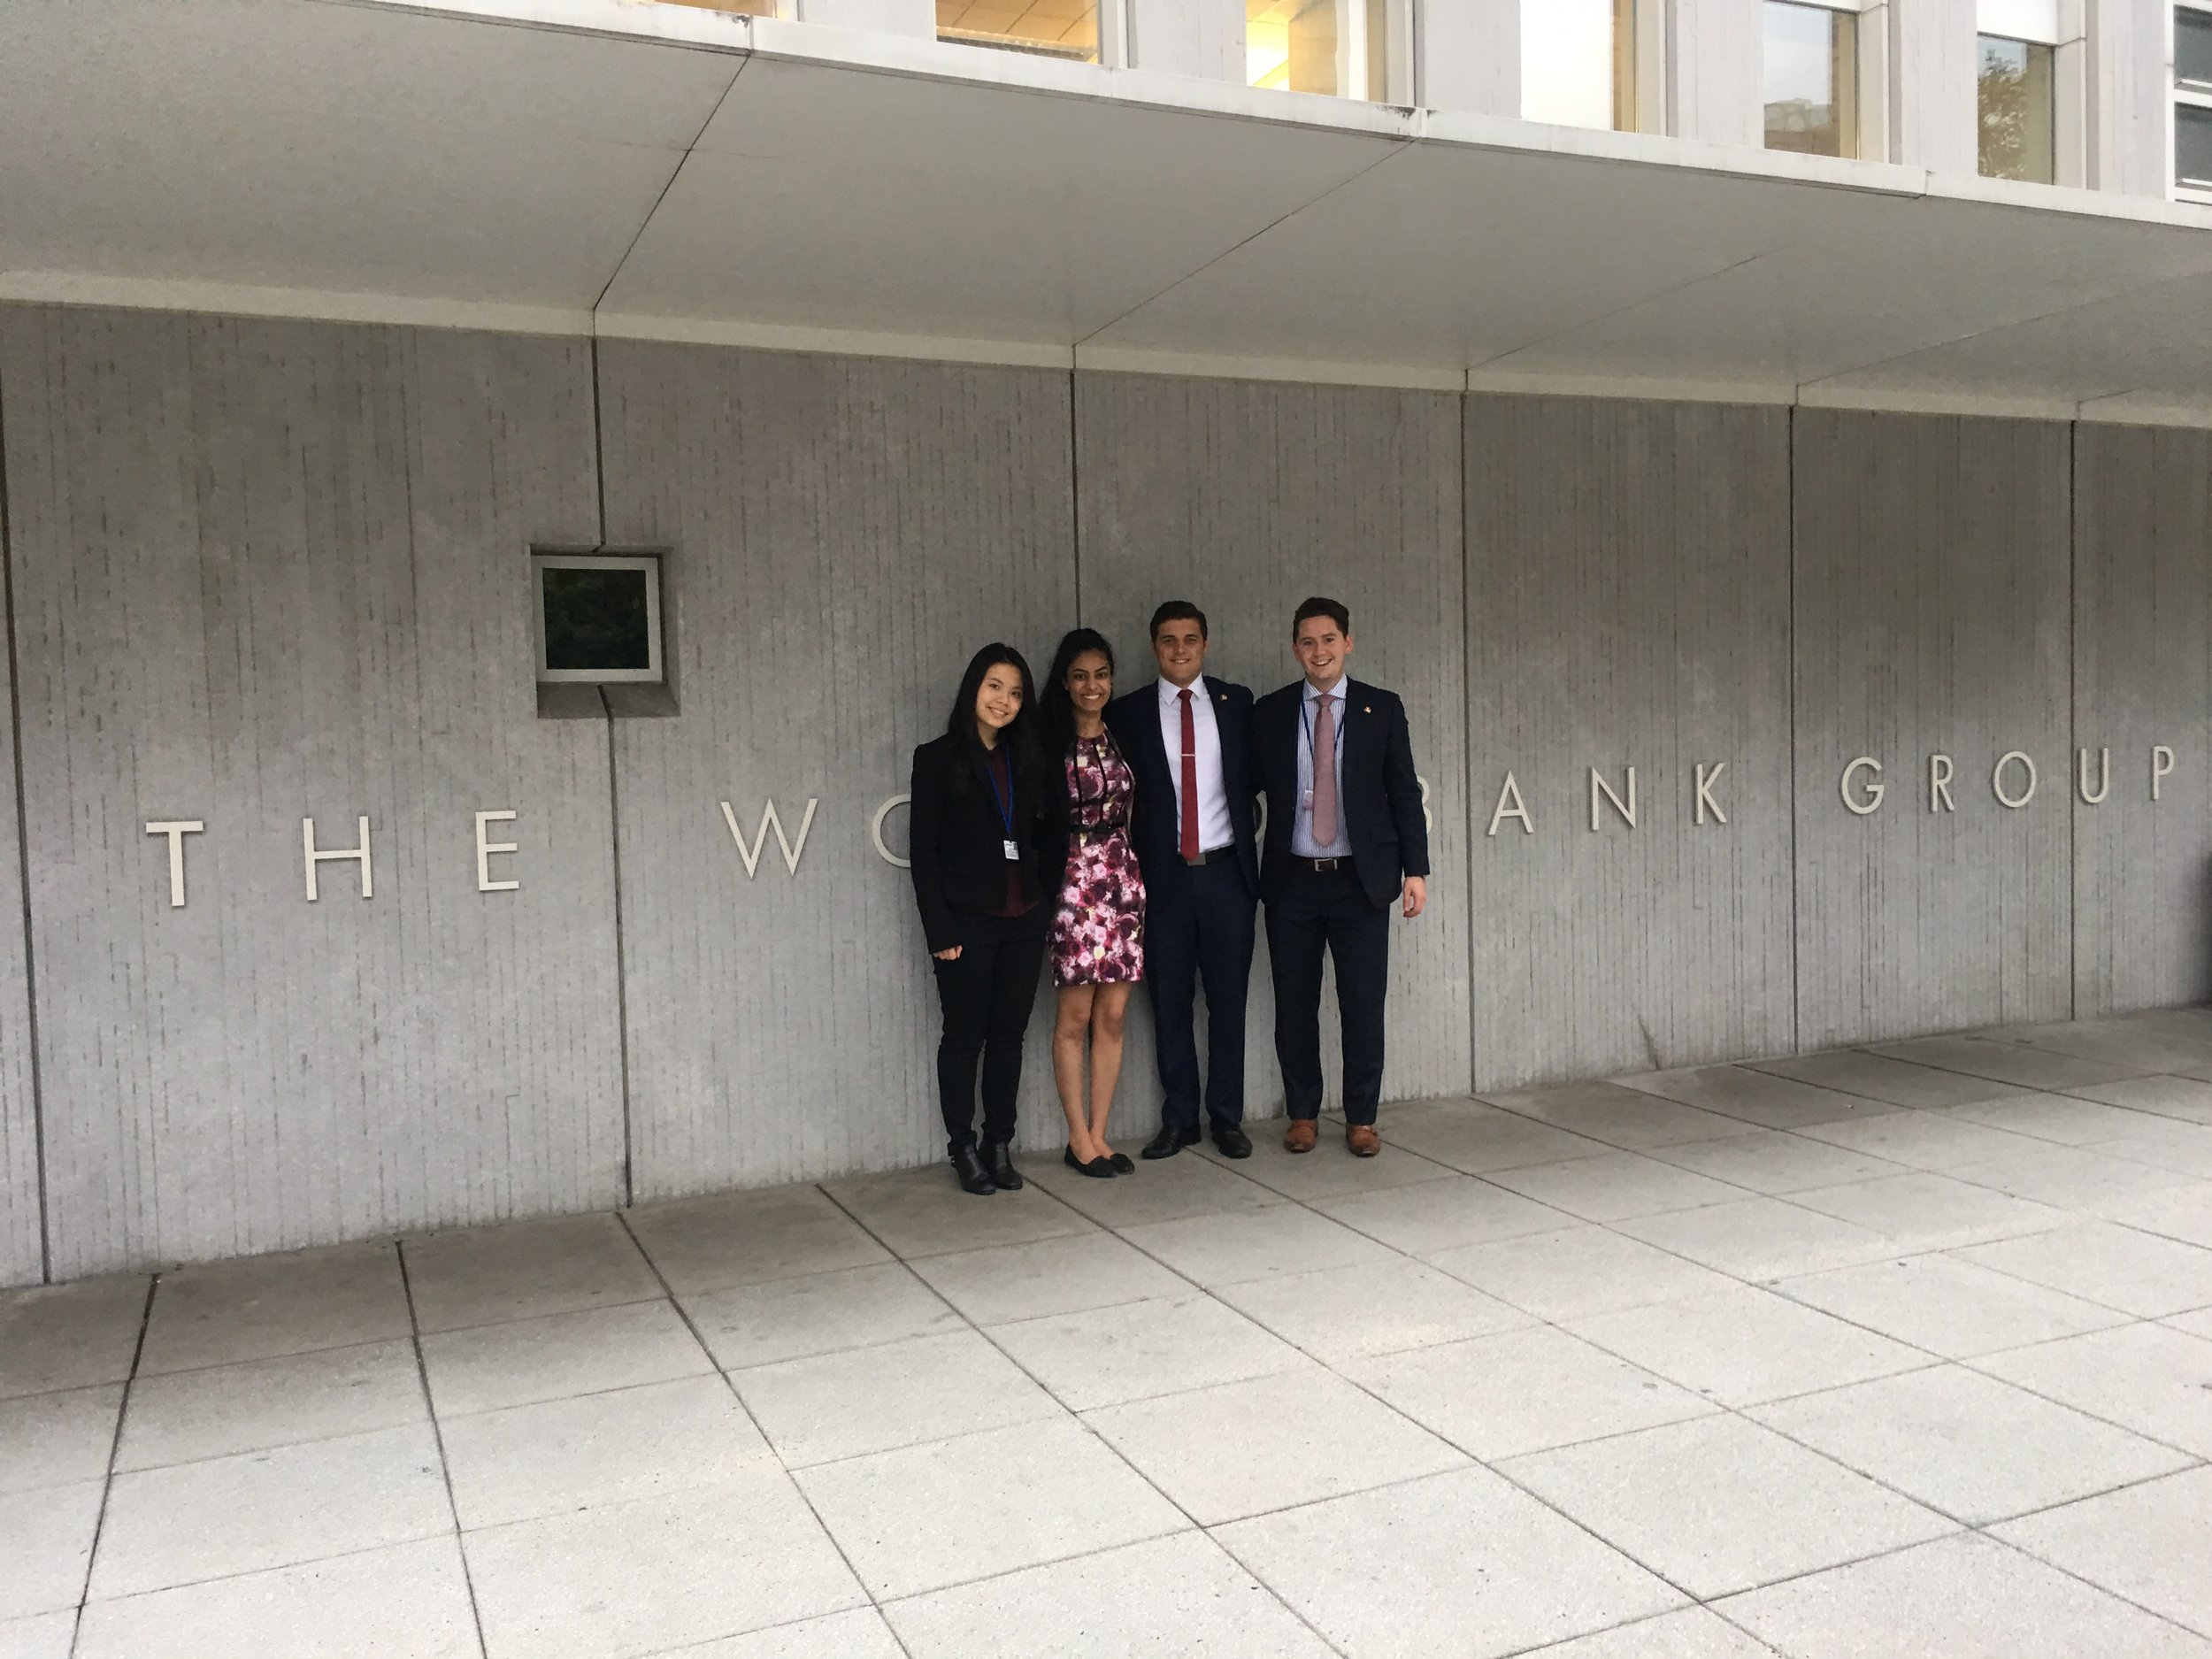 2017 World bank and imf annual meetings delegates (l - R) Katie Zhang (University of melbourne faculty of business and economics), SONIA Parulekar (UNSW Co-op Program), michael evans (quT Business SCHOOL), Arlen Dabinett (university of south australia business school)